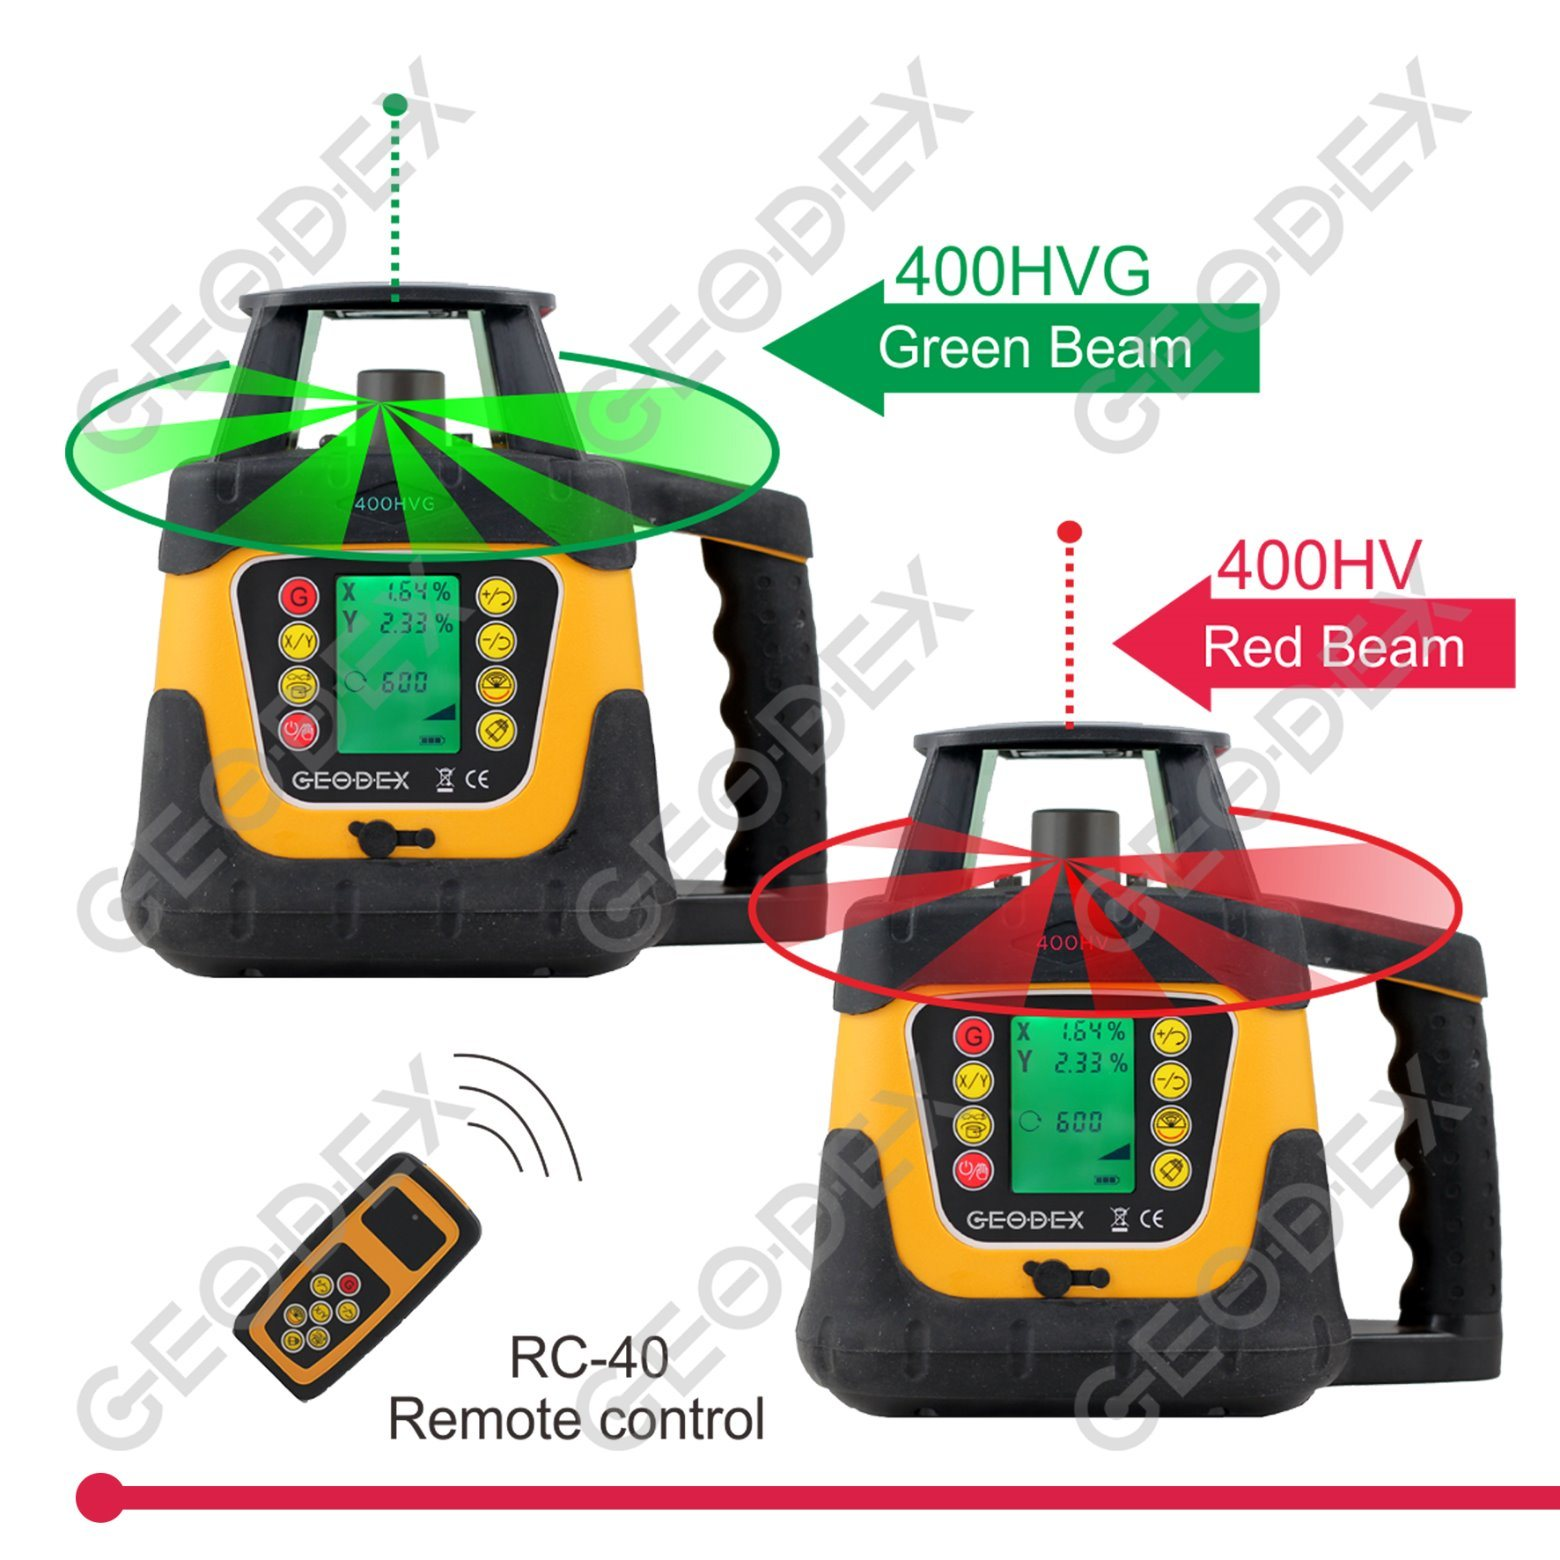 Automatic Self-Levelling Rotating Laser Level with LCD Display (400HV / 400HVG)